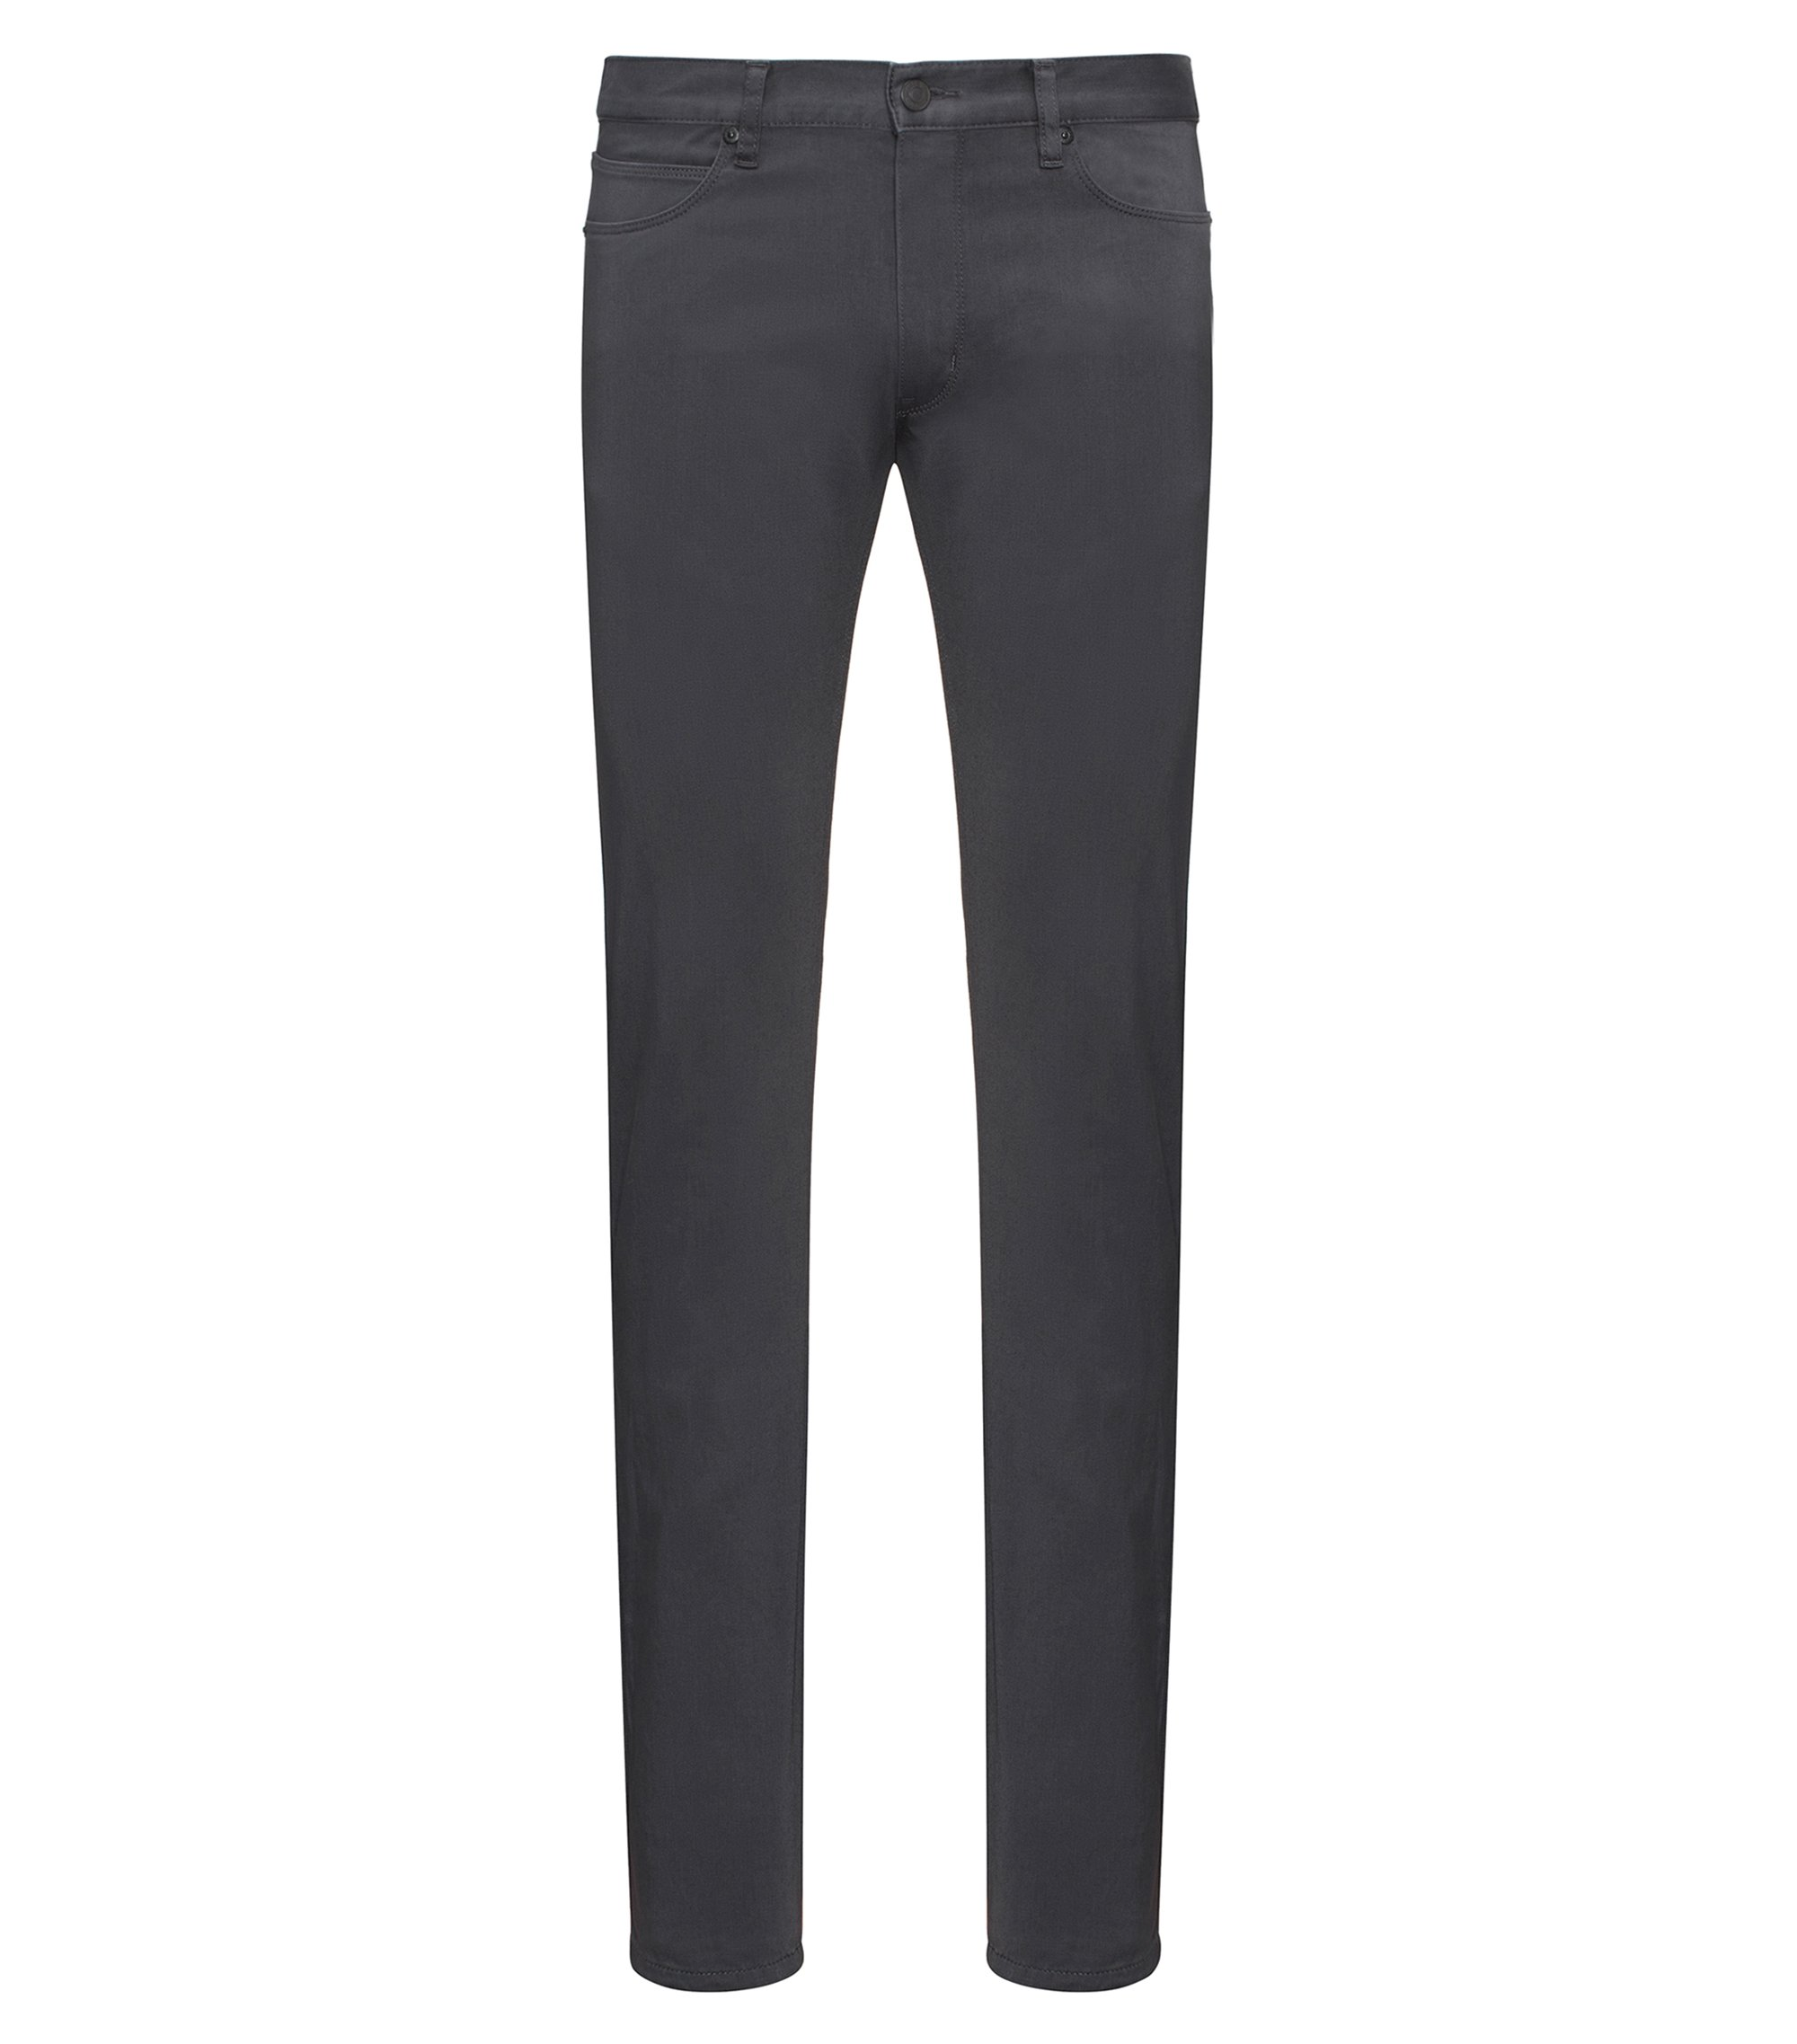 Jean Slim Fit noir en denim stretch, Gris sombre